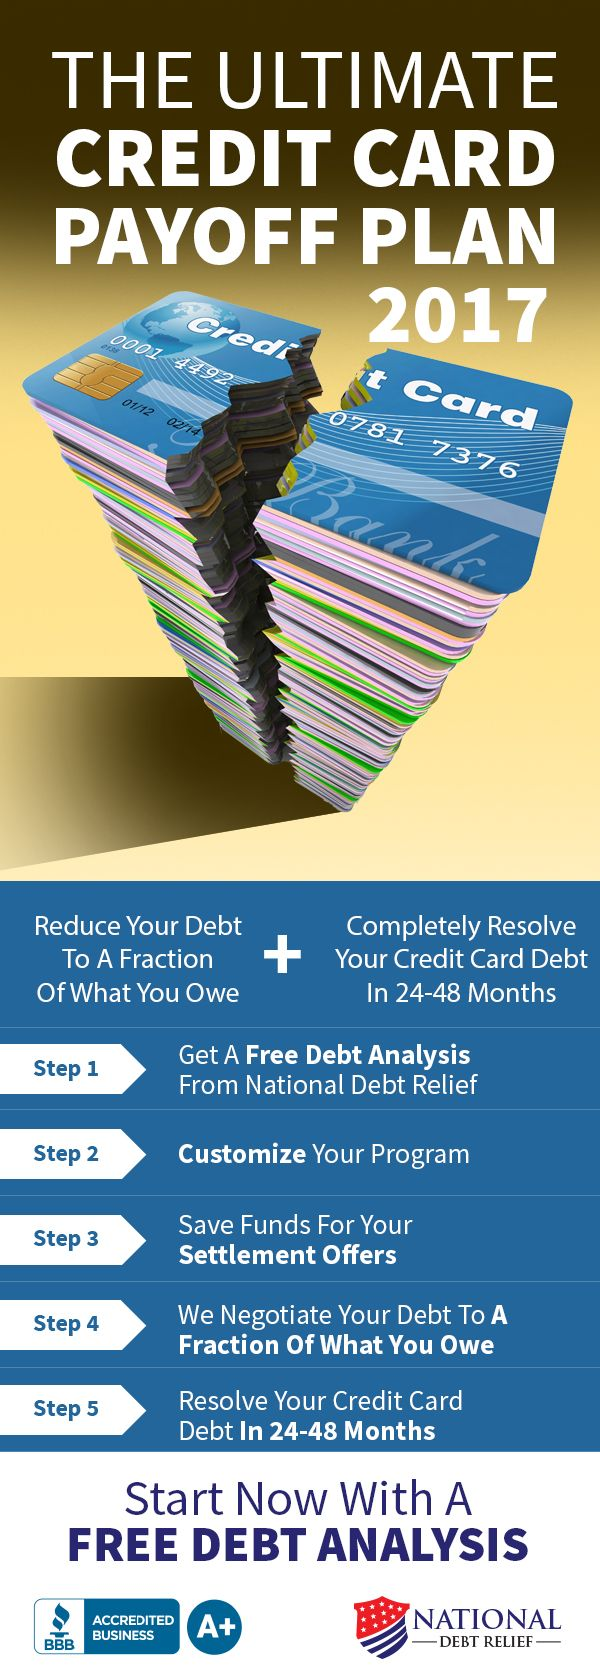 Drowning in credit card debt? The ultimate credit card payoff plan for 2017 is here to help. It's affordable, effective and easy to follow. #1 rated National Debt Relief offers a proven credit card payoff plan that has helped over 100,000 consumers resolve over $5 billion in unsecured debt since 2009. Consumers with over $10,000 in unsecured debt can get a no cost debt analysis with no obligation. BBB A+ accredited with a 100% money back guarantee.